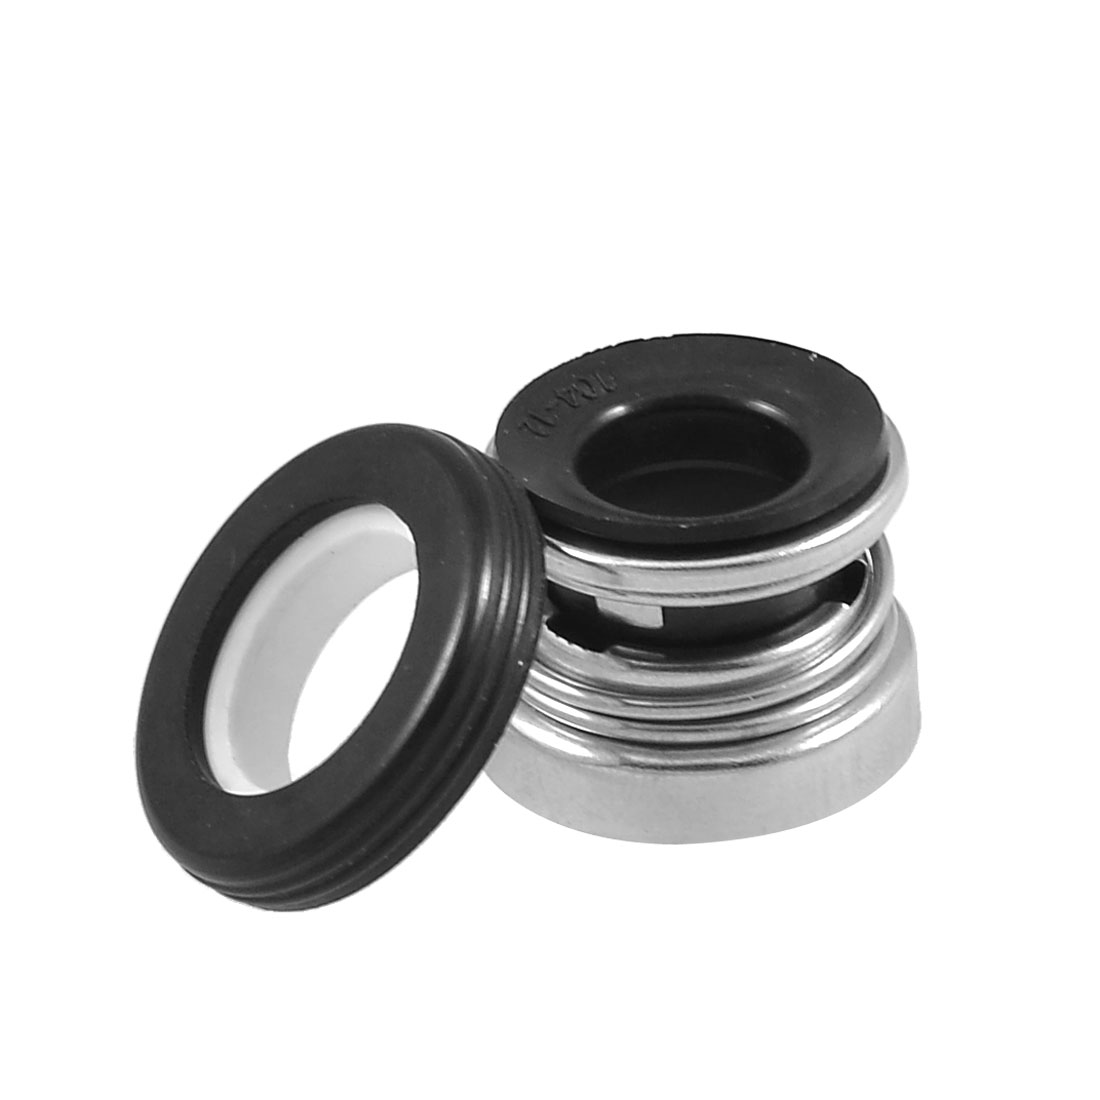 12mm Interior Diameter Single Spring Rubber Bellows Mechanical Seal